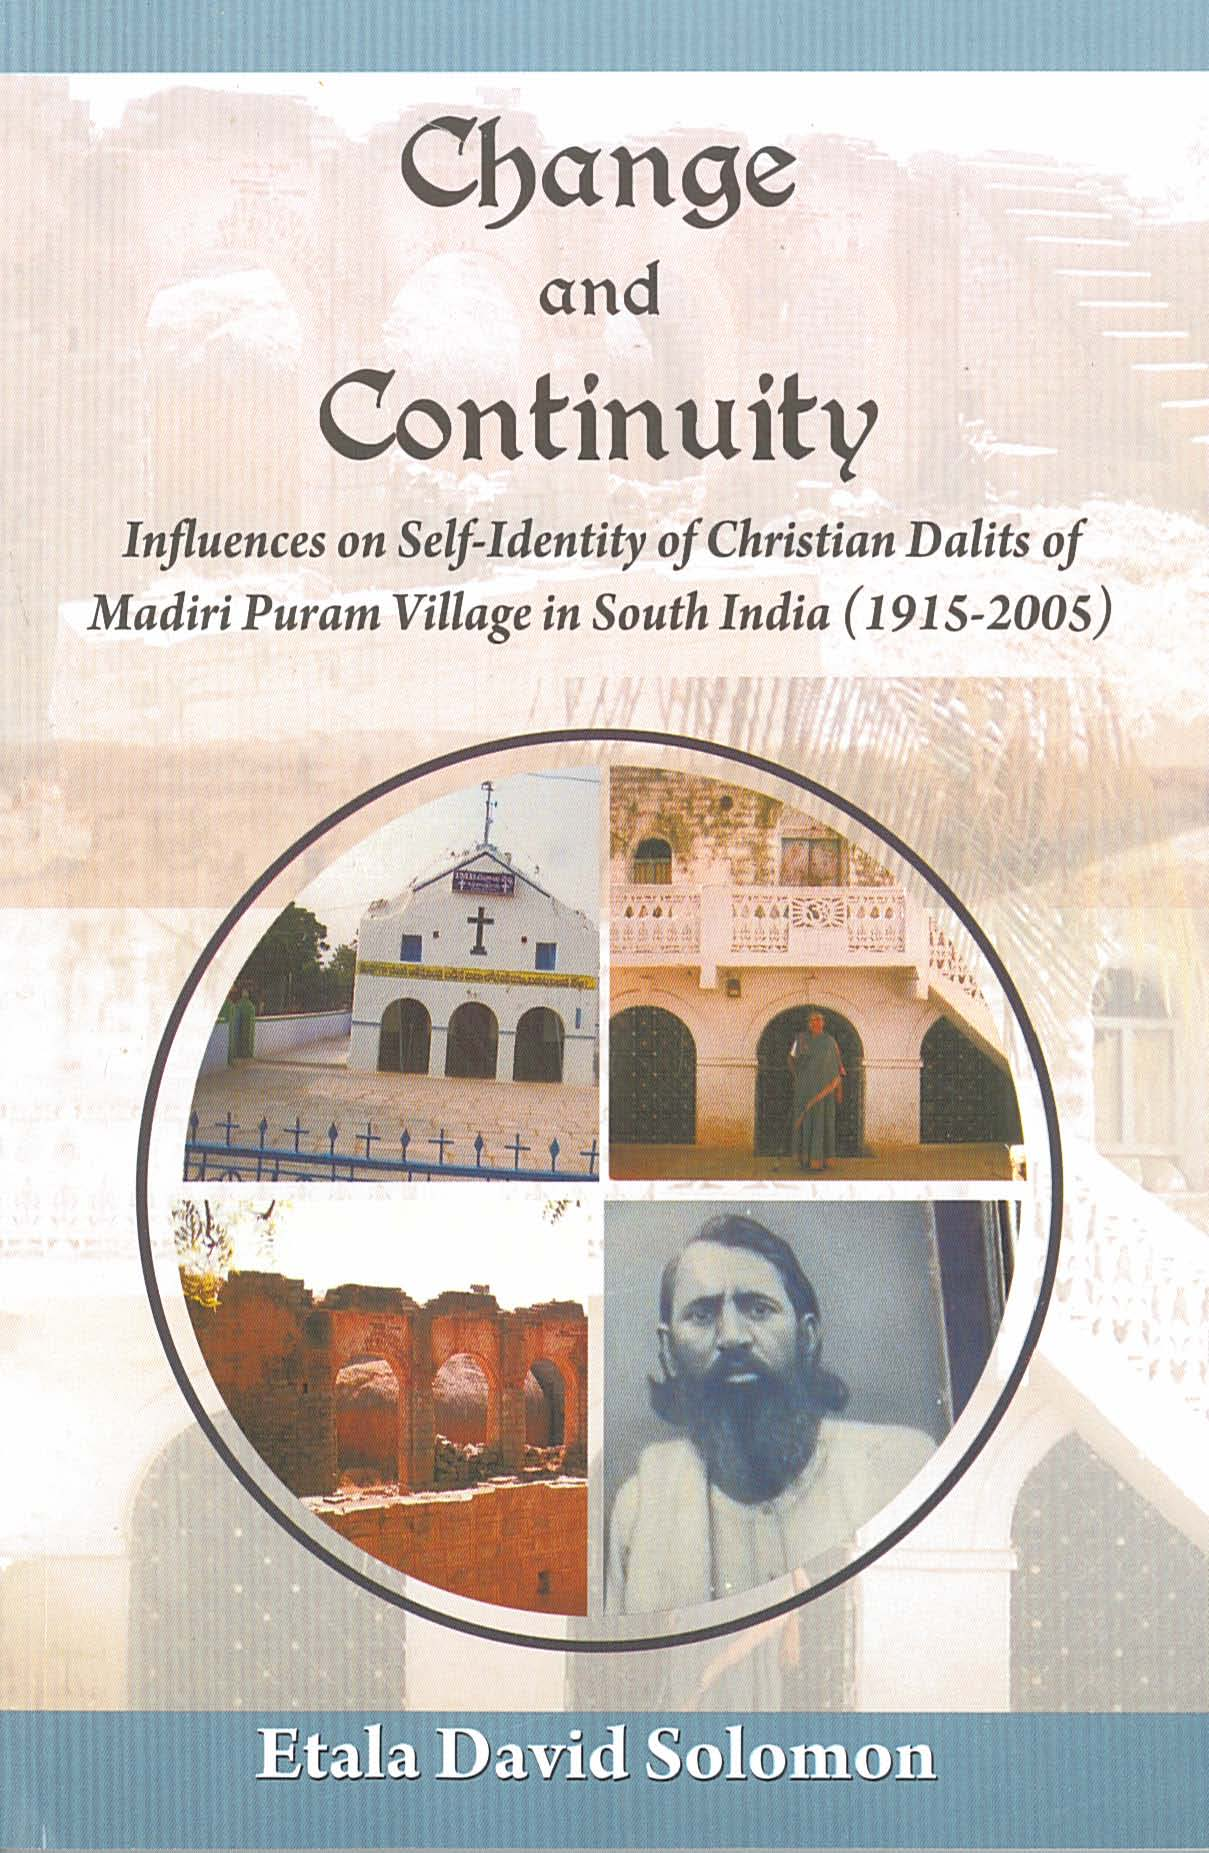 changes and continuities of christianity Analyze the changes and continuities in the arabic world's acceptance of one and asia with the impact of the spread of orthodox christianity into russia and.